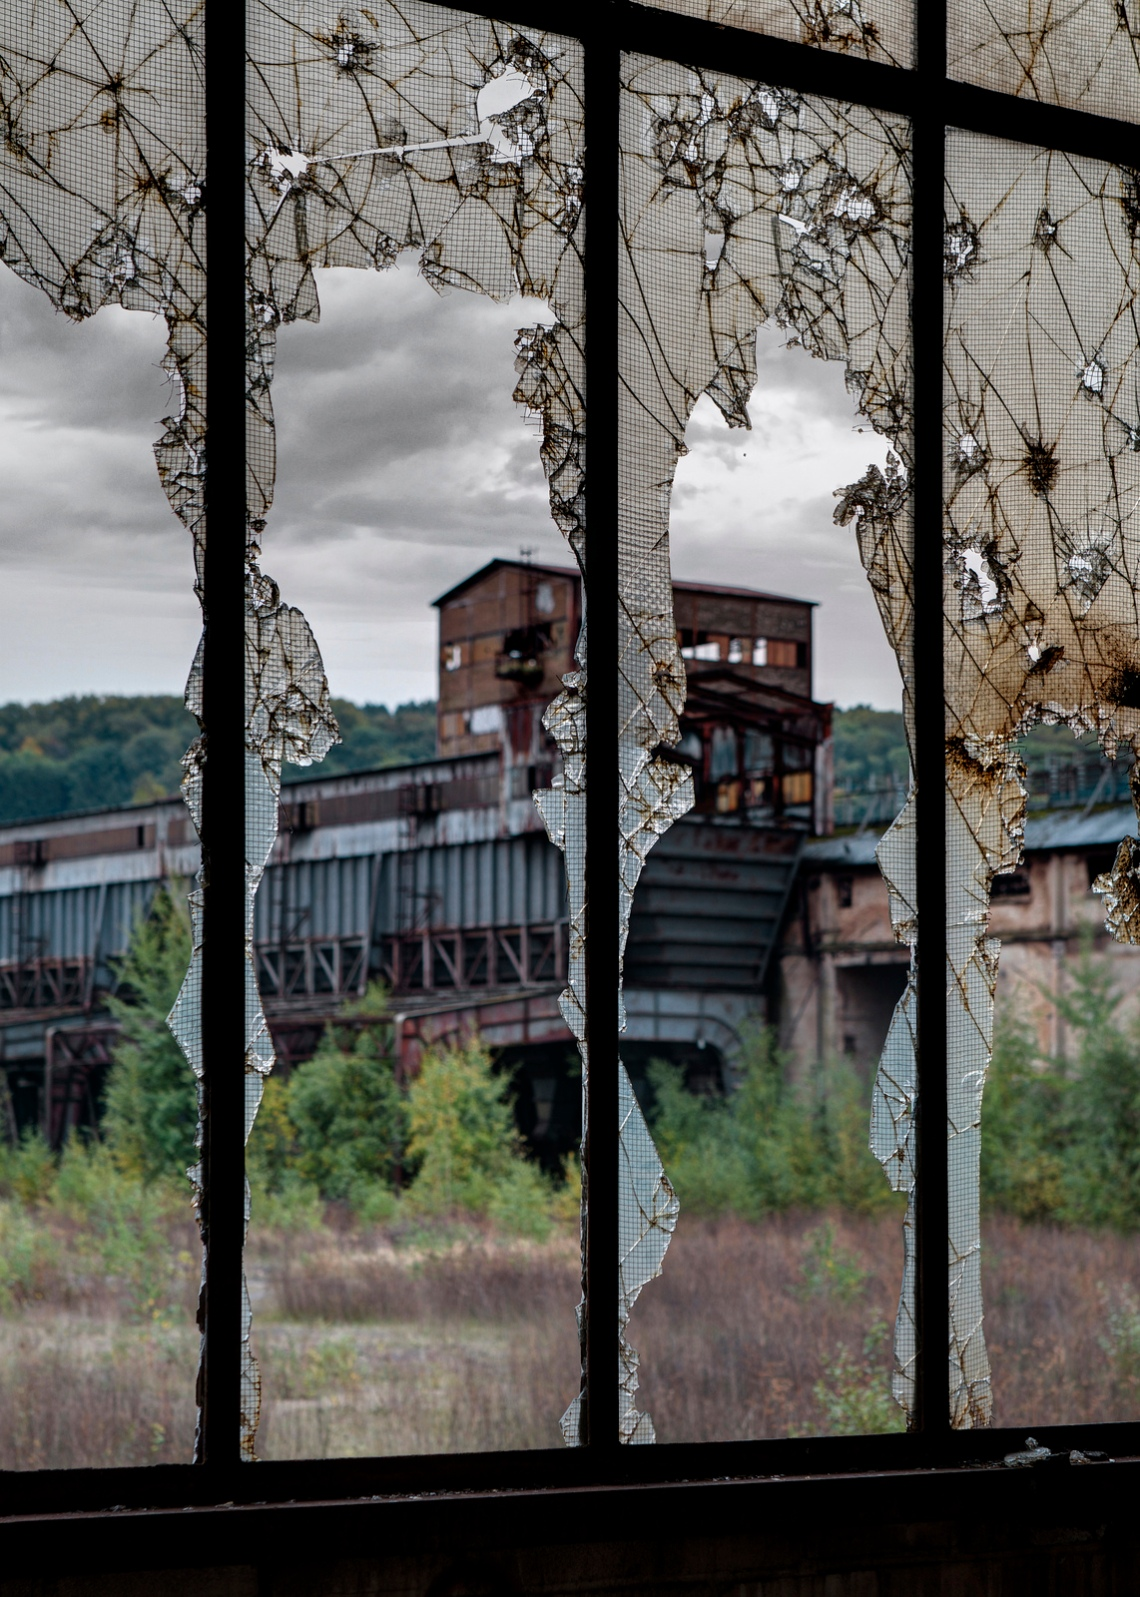 Steel plant. Photograph by Forgotten Heritage Photography. Used with permission.